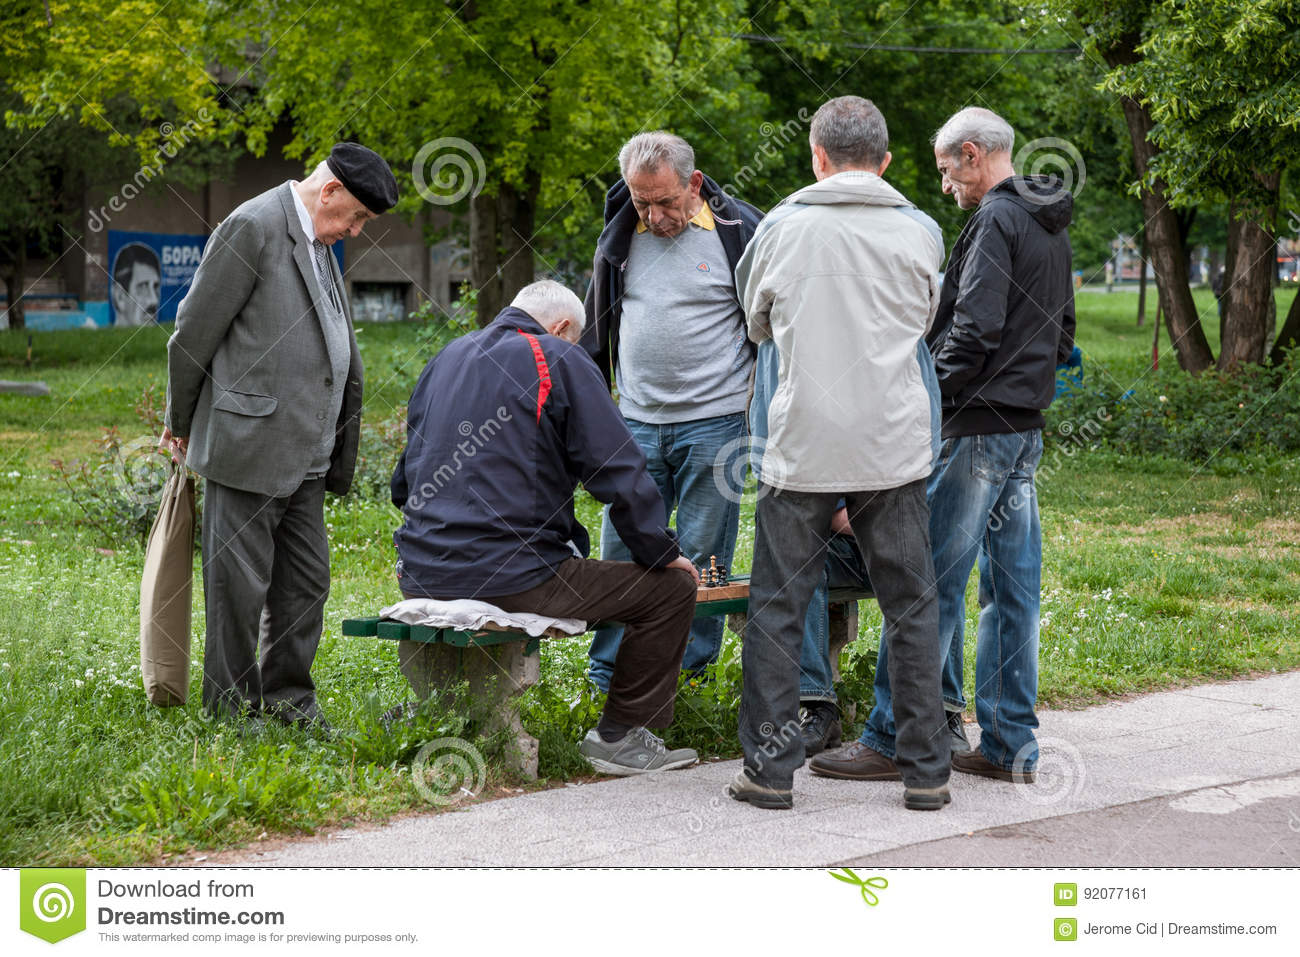 Pictures of Serbs - Page 209  |Belgrade Serbia Men